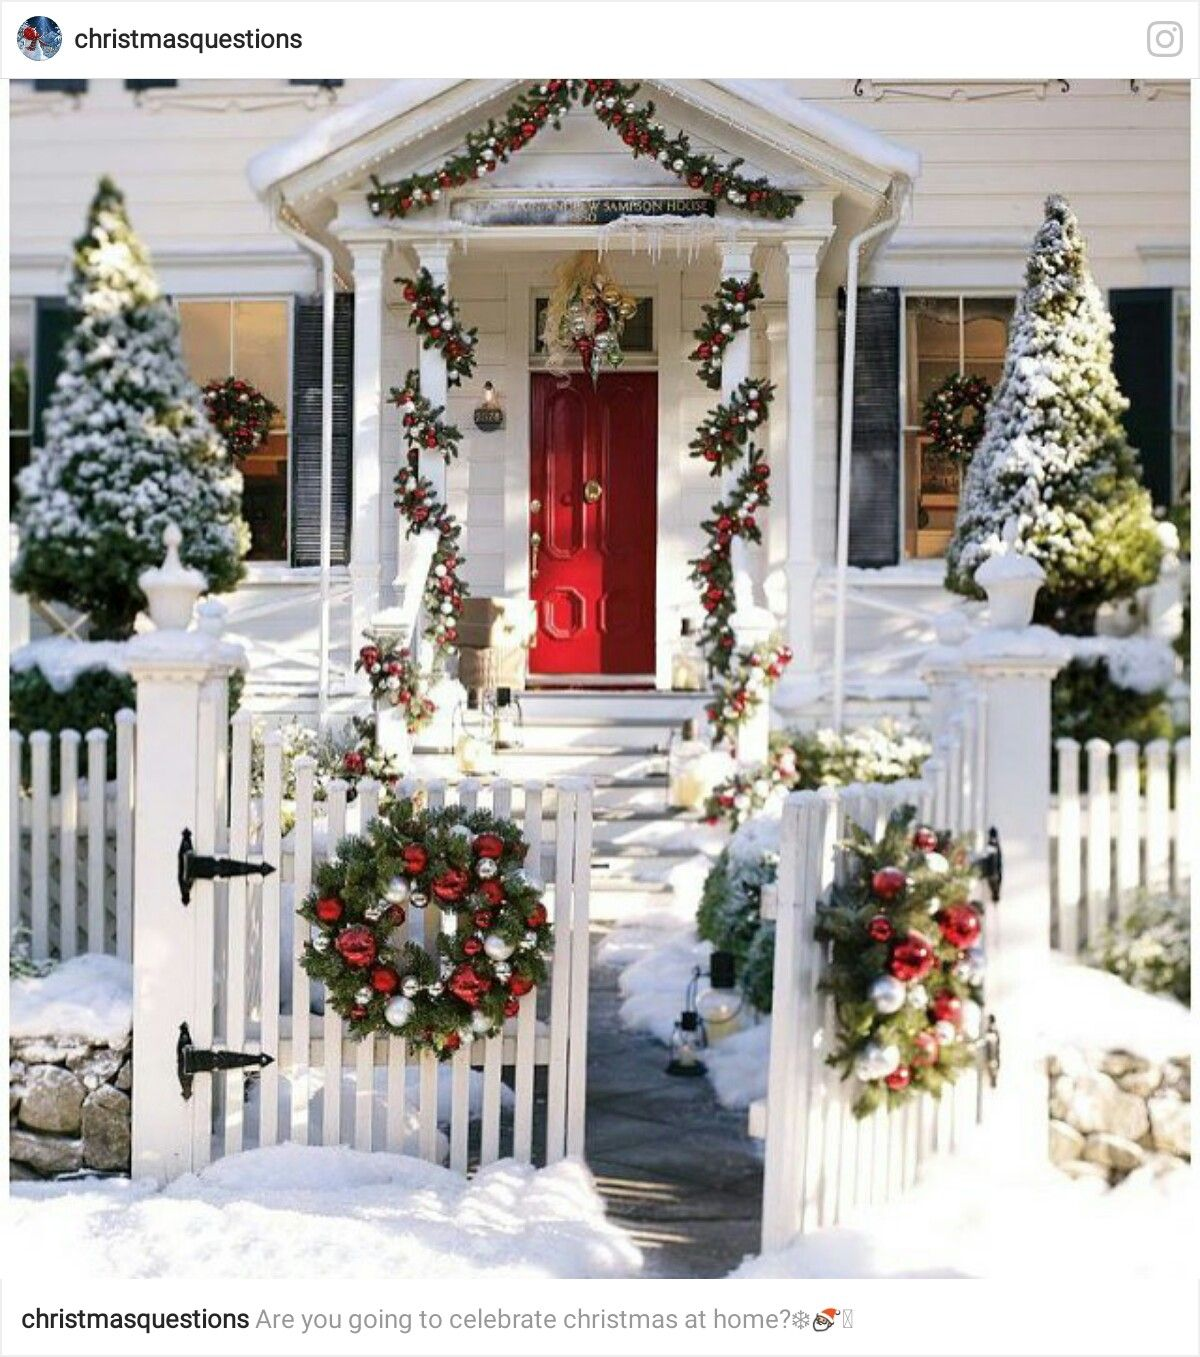 Explore Outdoor Xmas Decorations And More!